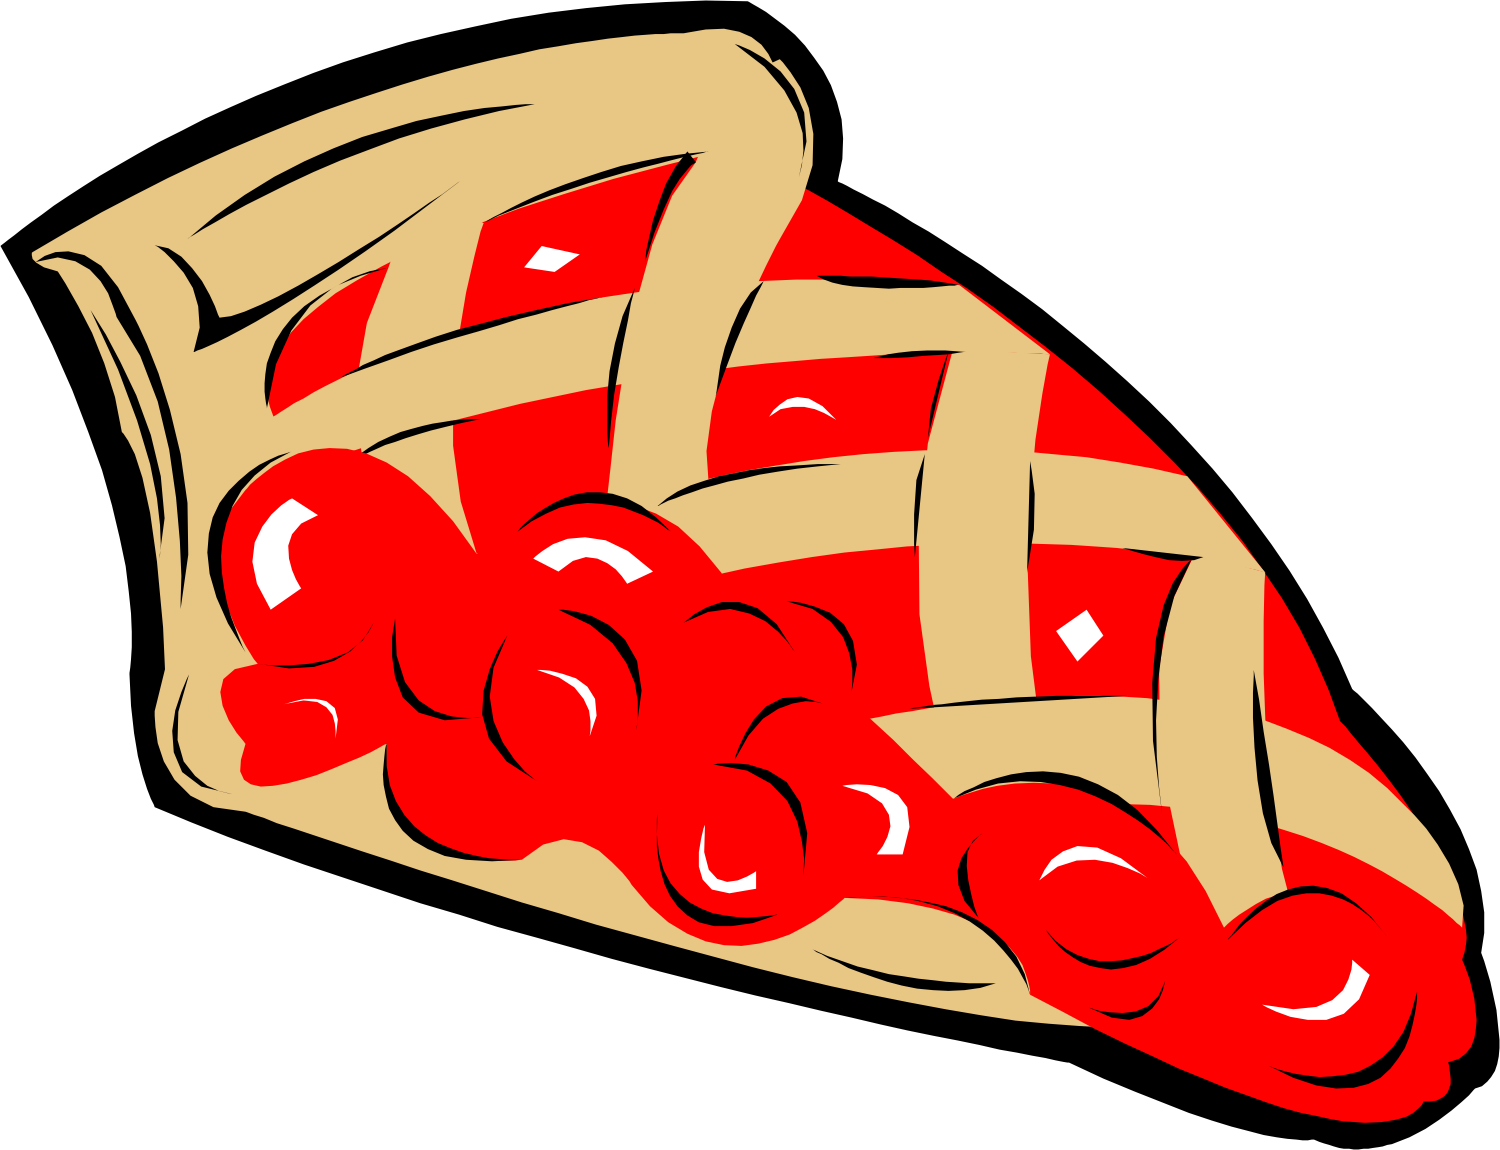 Free Pie Cartoon Cliparts, Download Free Clip Art, Free Clip Art on.